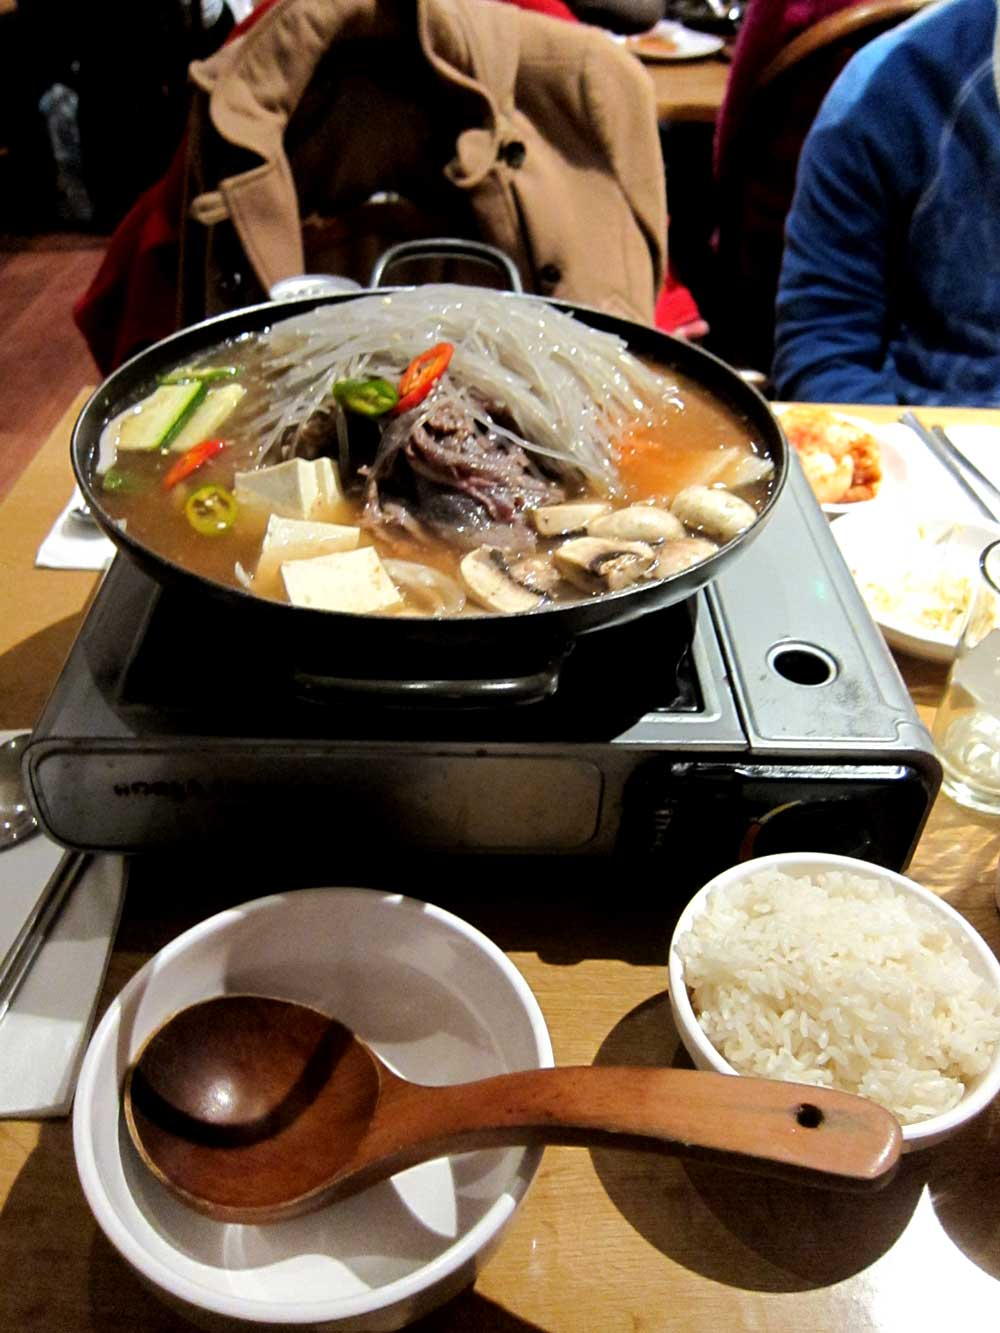 I appologise for the bad photo - it turns out I go there so much that I only have this shot of the hot pot from 4 years ago...